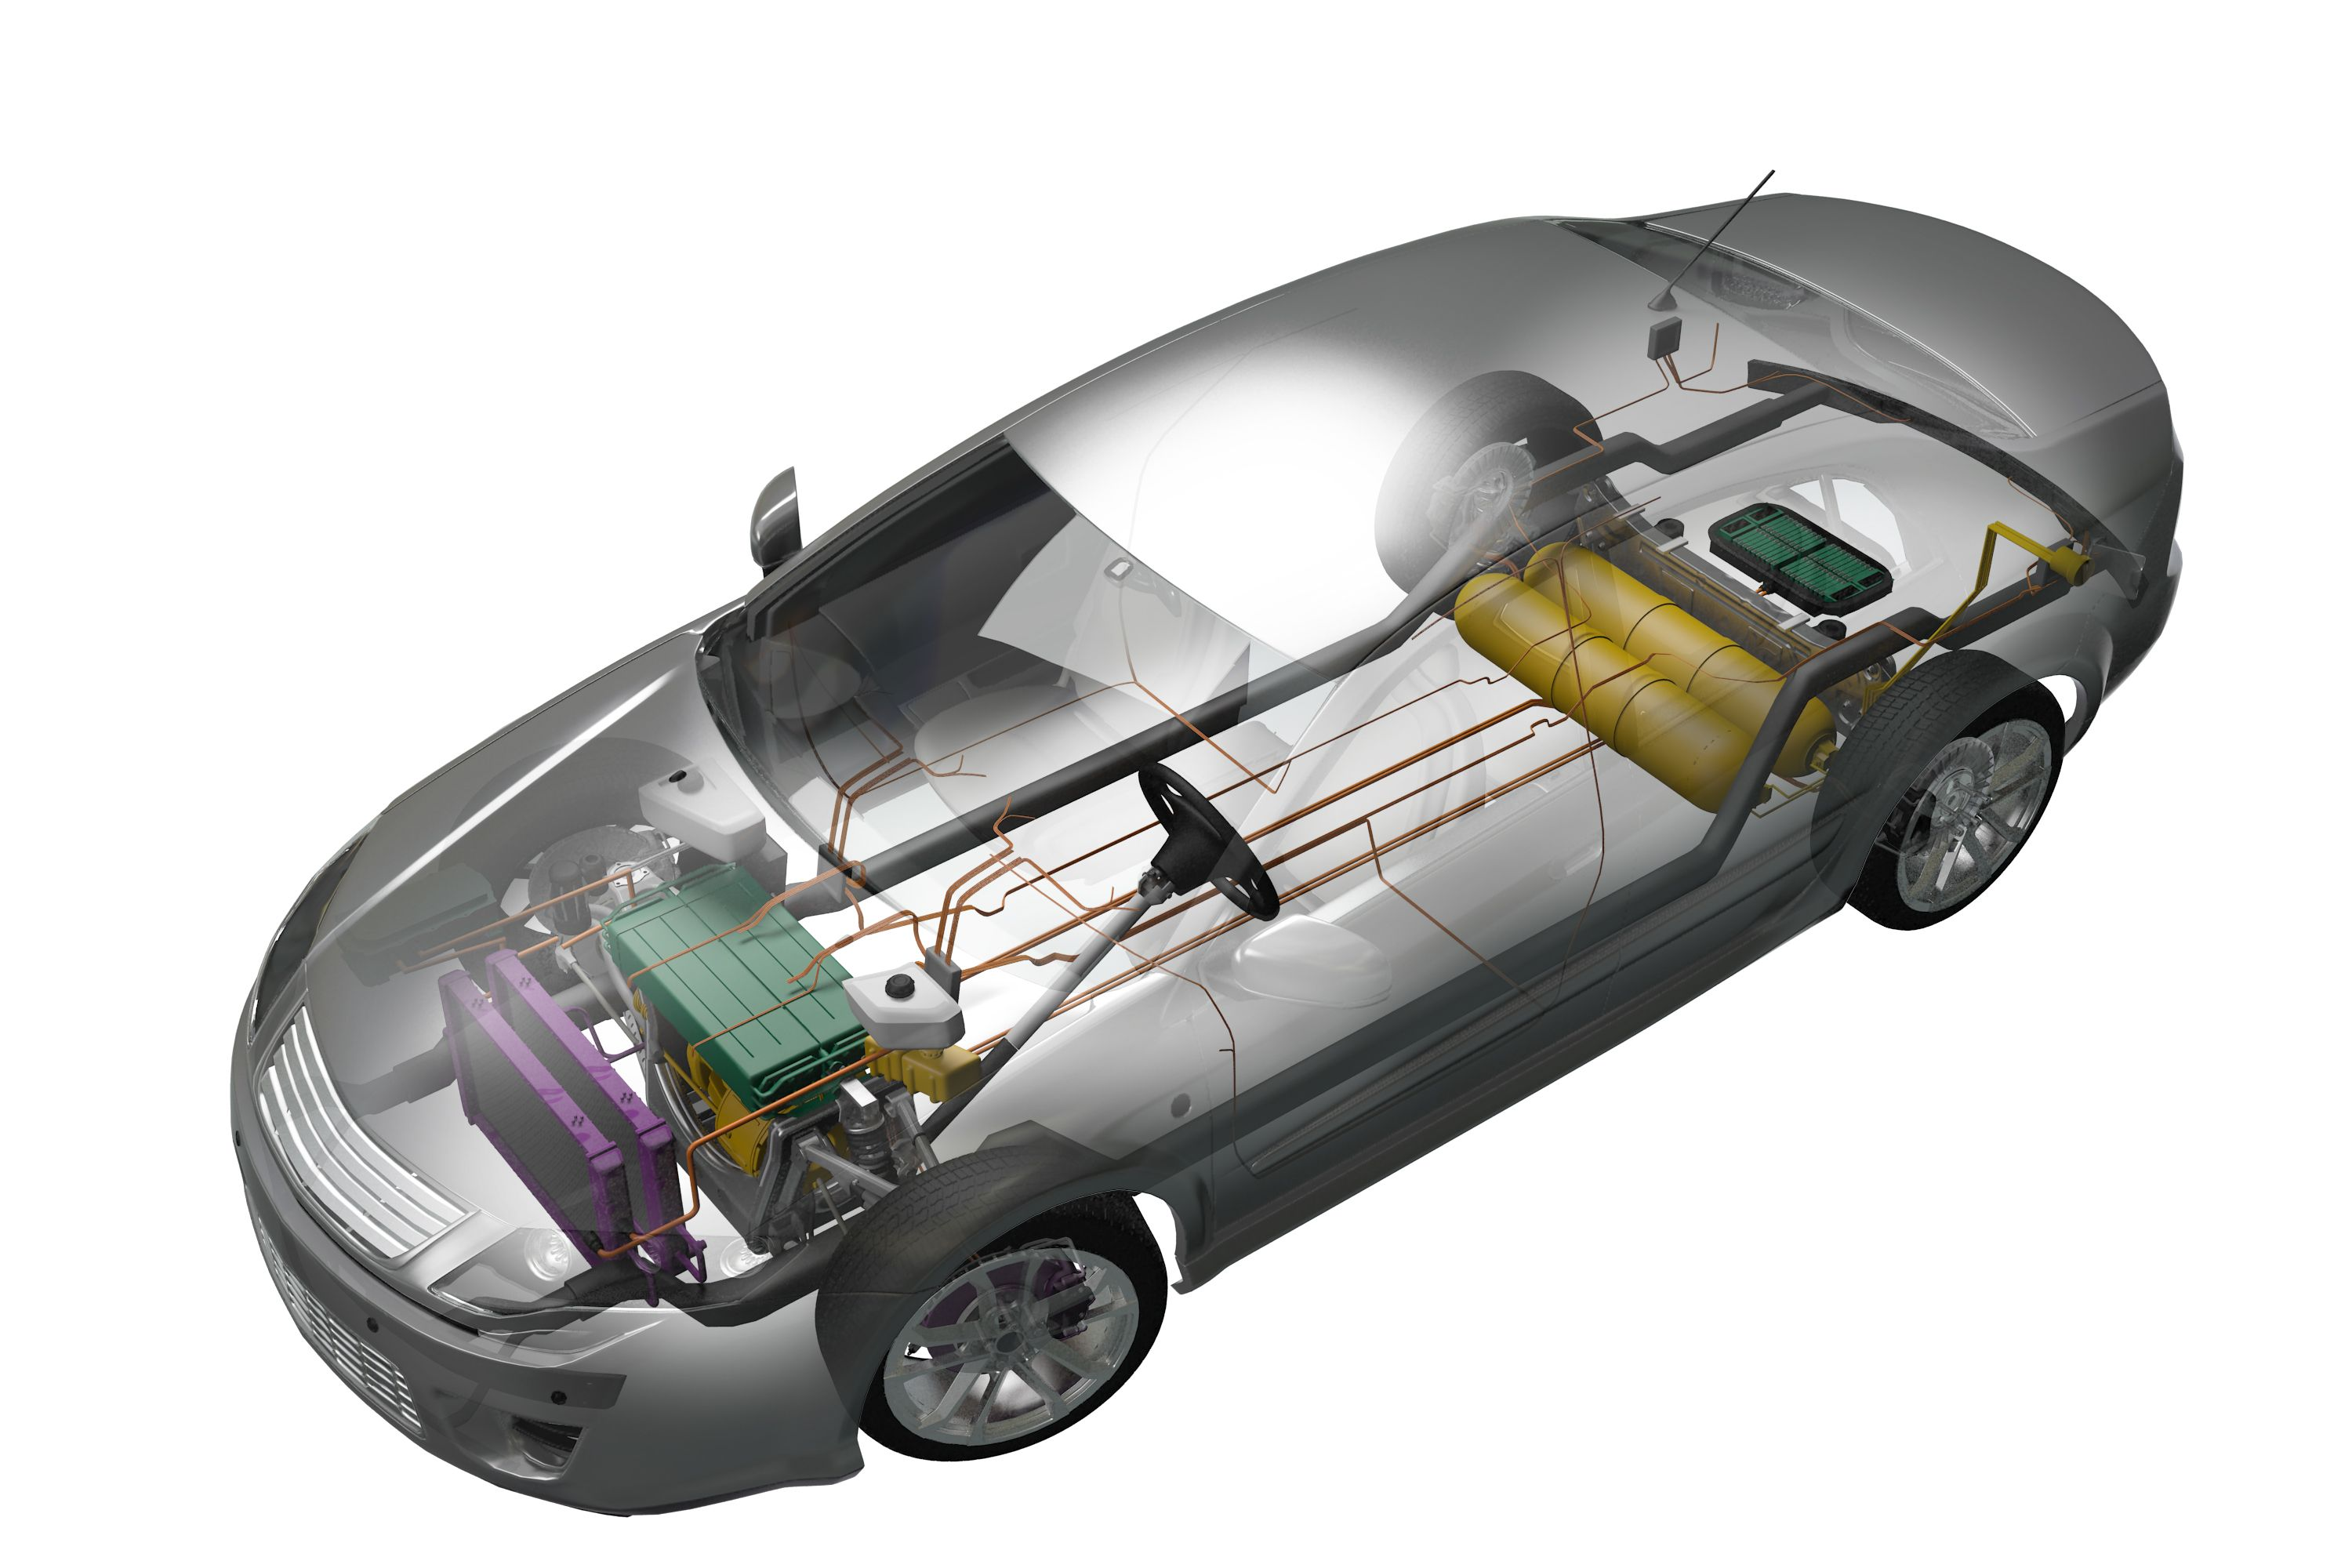 Model Hydrogen Fuel Cell Cars Fuel Cell Vehic...